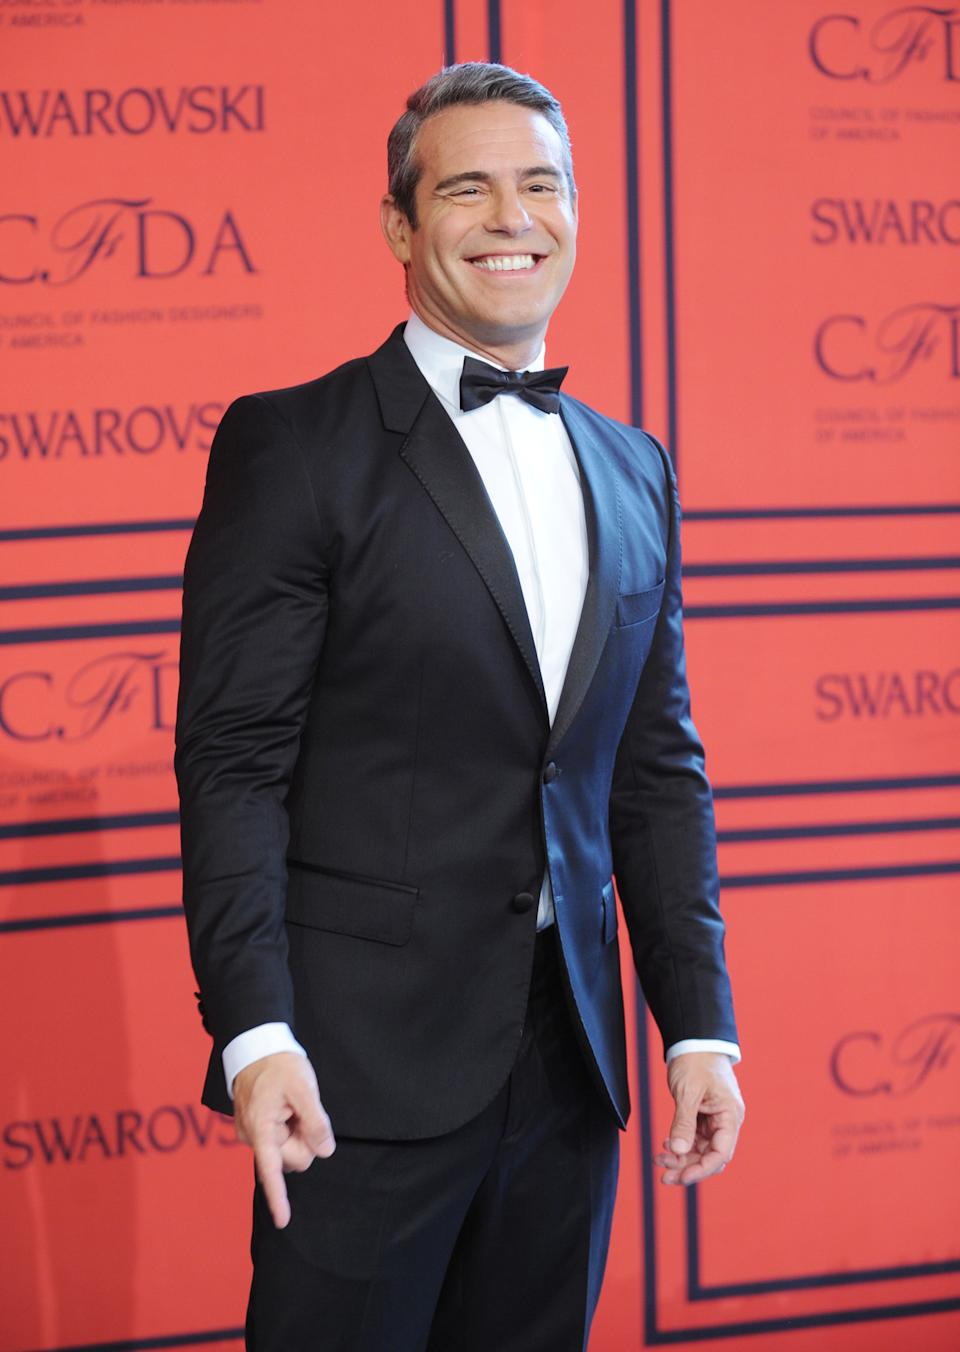 TV personality Andy Cohen attends the 2013 CFDA Fashion Awards at Alice Tully Hall on Monday, June 3, 2013 in New York. (Photo by Brad Barket/Invision/AP)